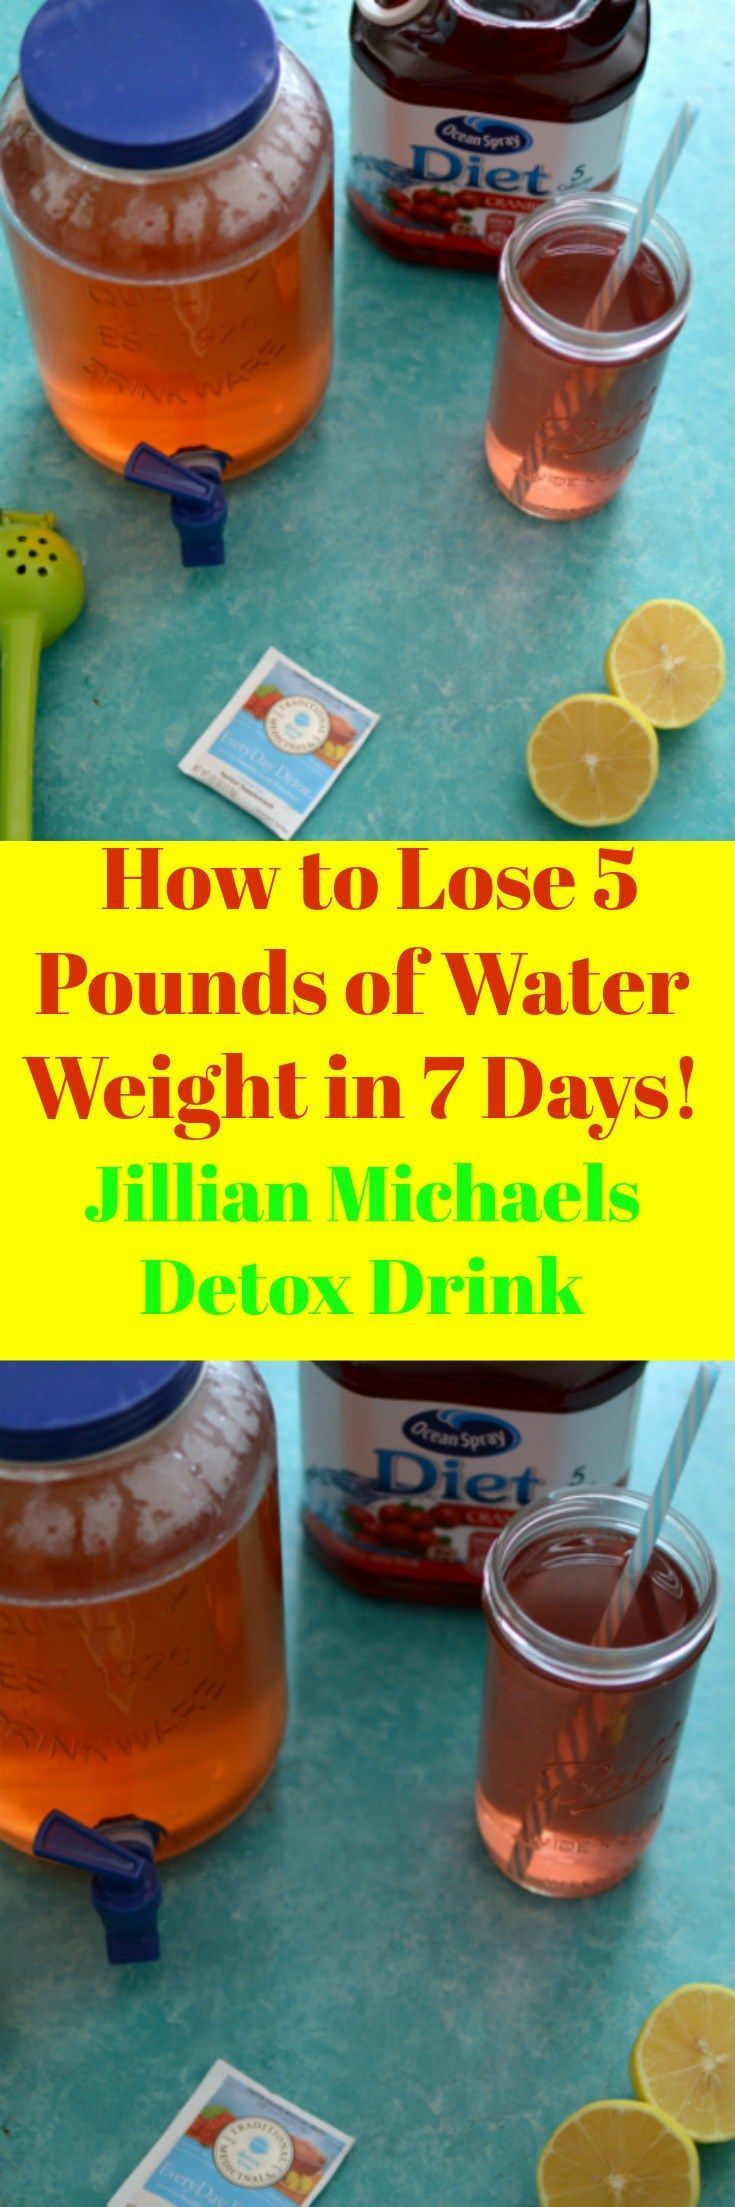 You will absolutely have to try the Jillian Michaels Detox Drink and learn quickly How to Lose 5 Pounds of water weight you have been carrying around. Drink this drink for five continuous days and flush unwanted toxins and belly waste away. This is the Ultimate drink for crushing those weight loss goals.